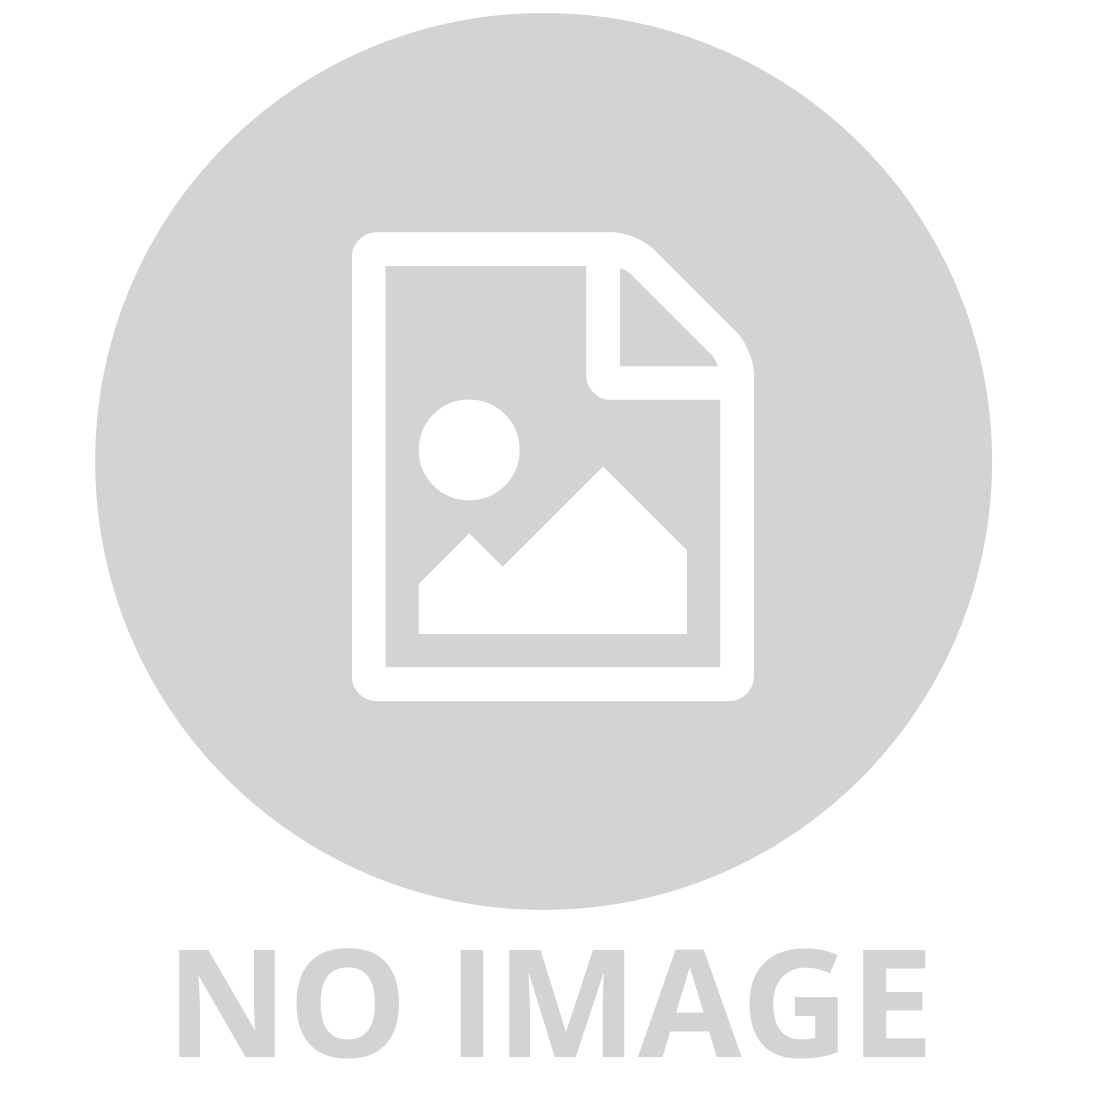 COLORIFIC CLASSIC CRAFT MAGNETIC LOWER CASE LETTERS